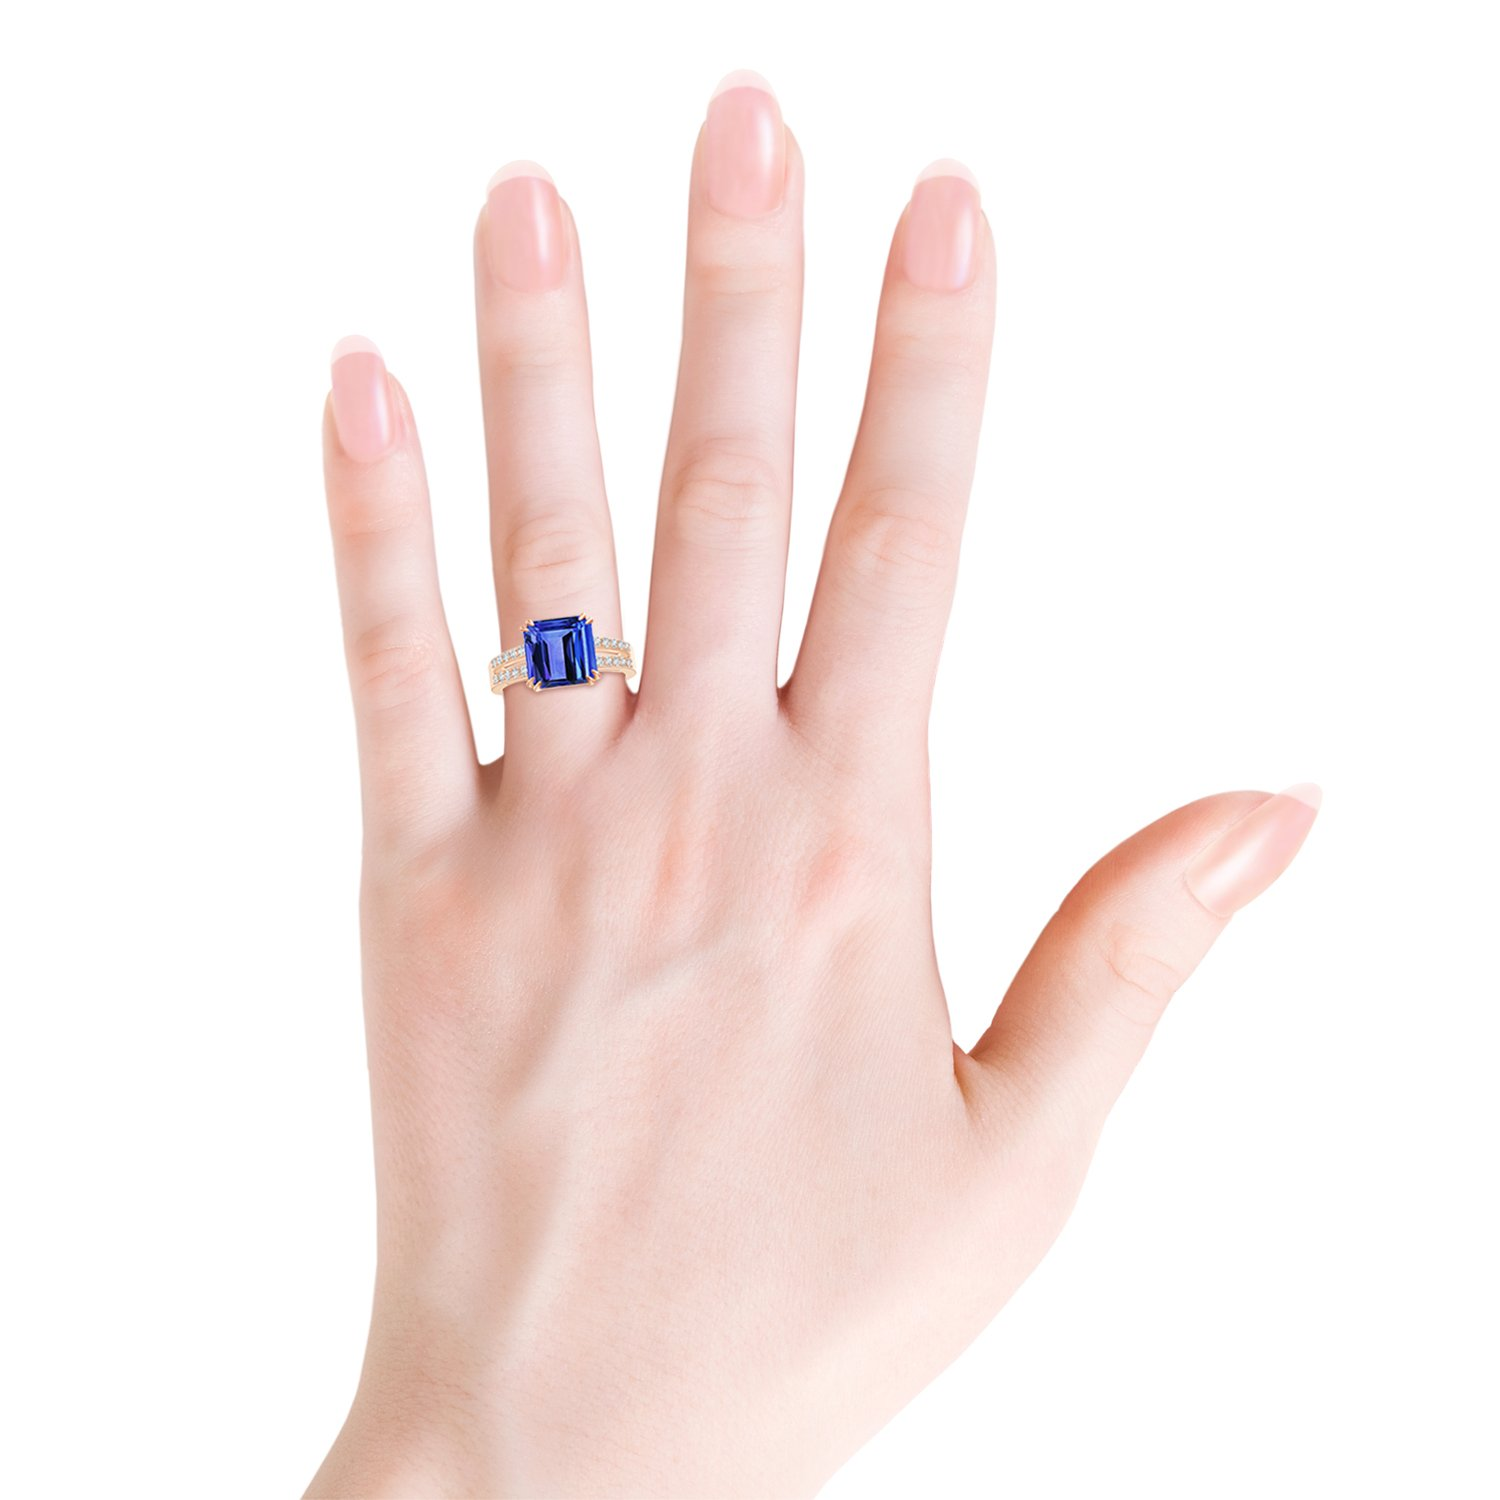 Holiday Offer - December Birthstone - Claw Set Emerald Cut Tanzanite Ring for Women with Diamond Accents in 14K Rose Gold (9mm Tanzanite) by Angara.com (Image #3)